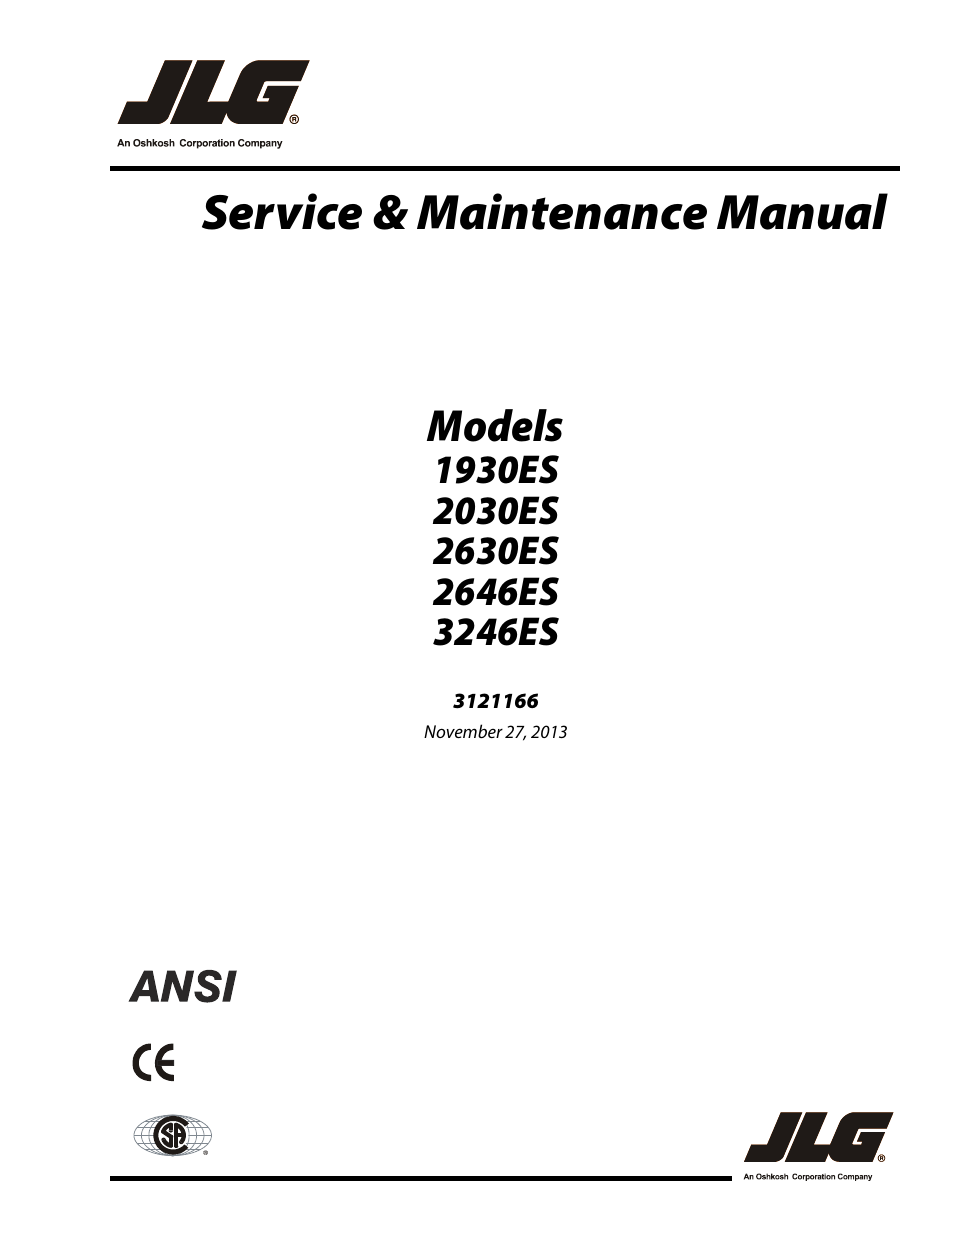 JLG 3246ES Service Manual User Manual | 222 pages | Also for: 2646ES  Service Manual, 2046ES Service Manual, 2030ES Service Manual, 1930ES  Service ManualManuals Directory